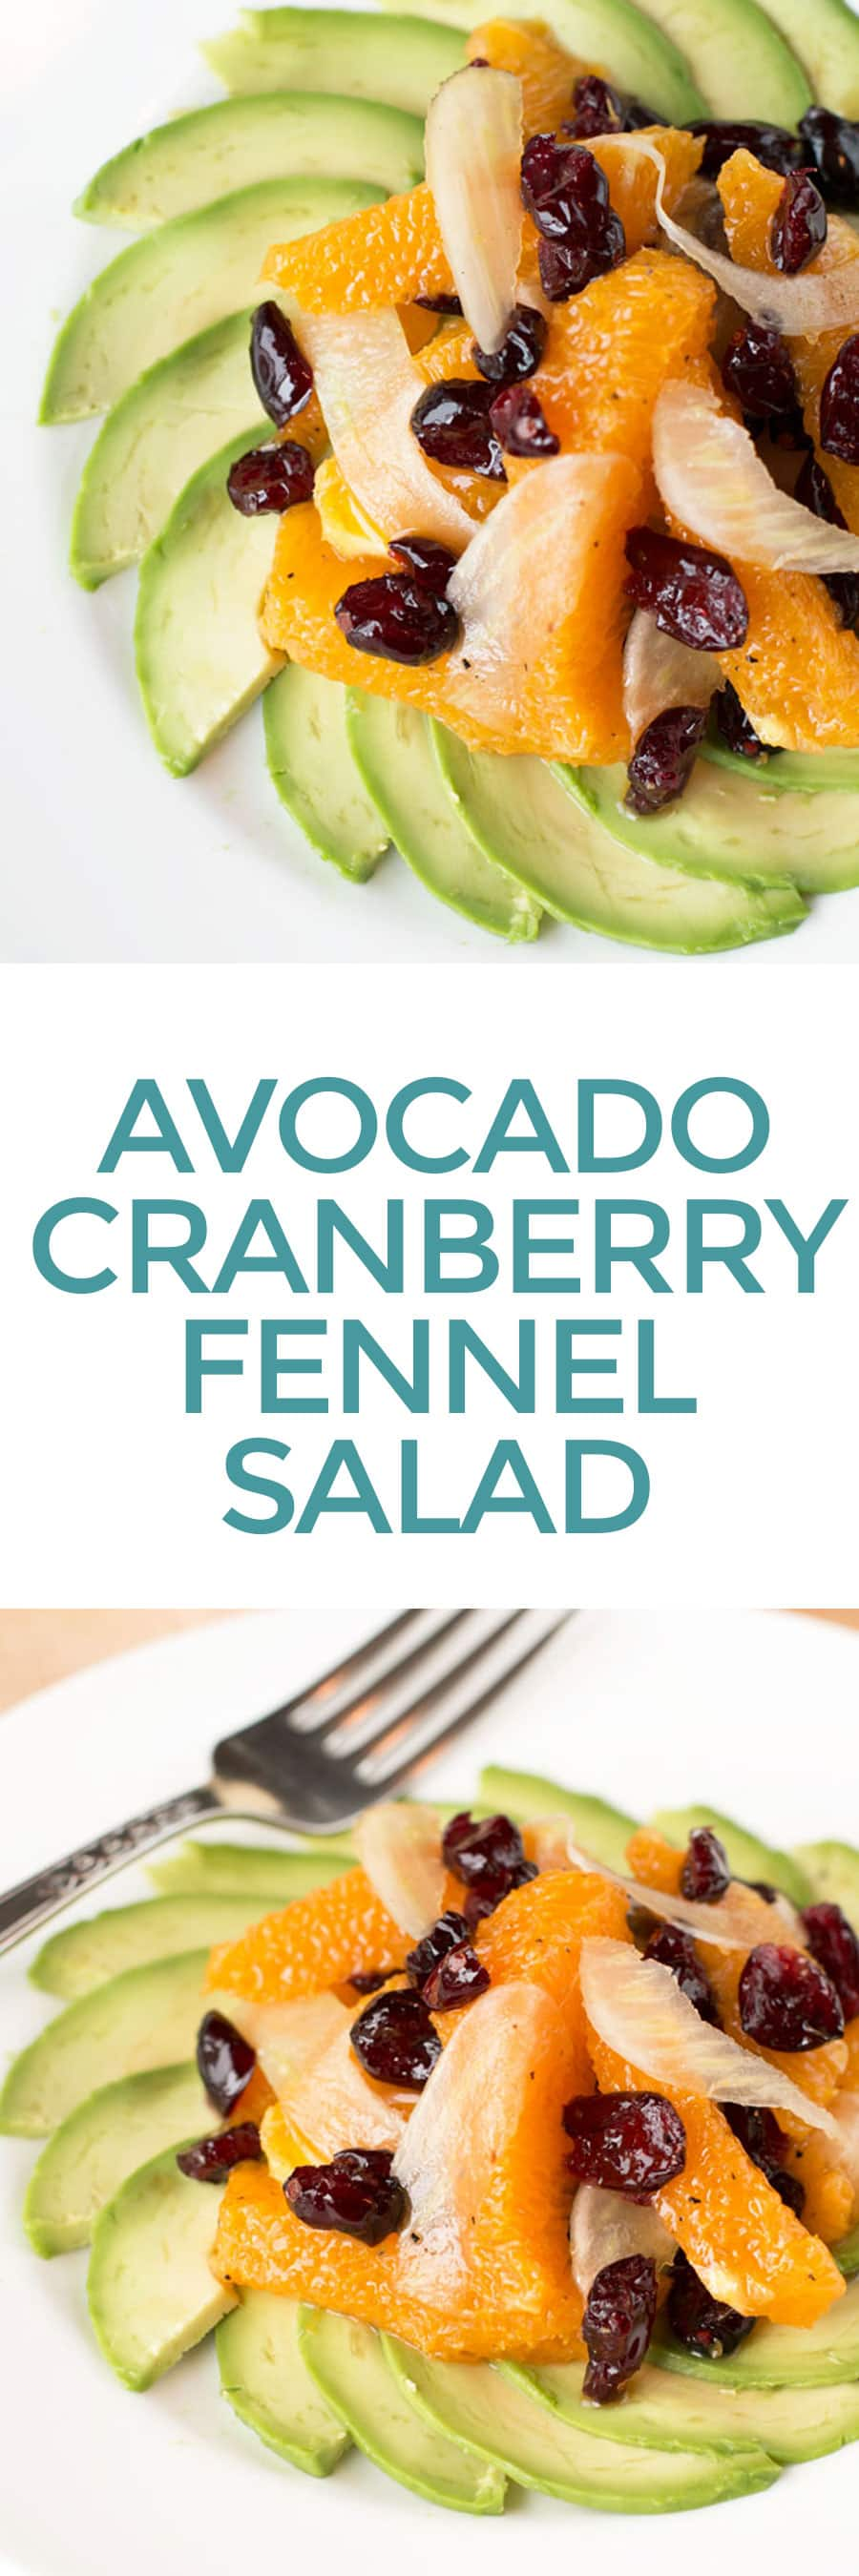 Avocado Fennel Salad | cakenknife.com